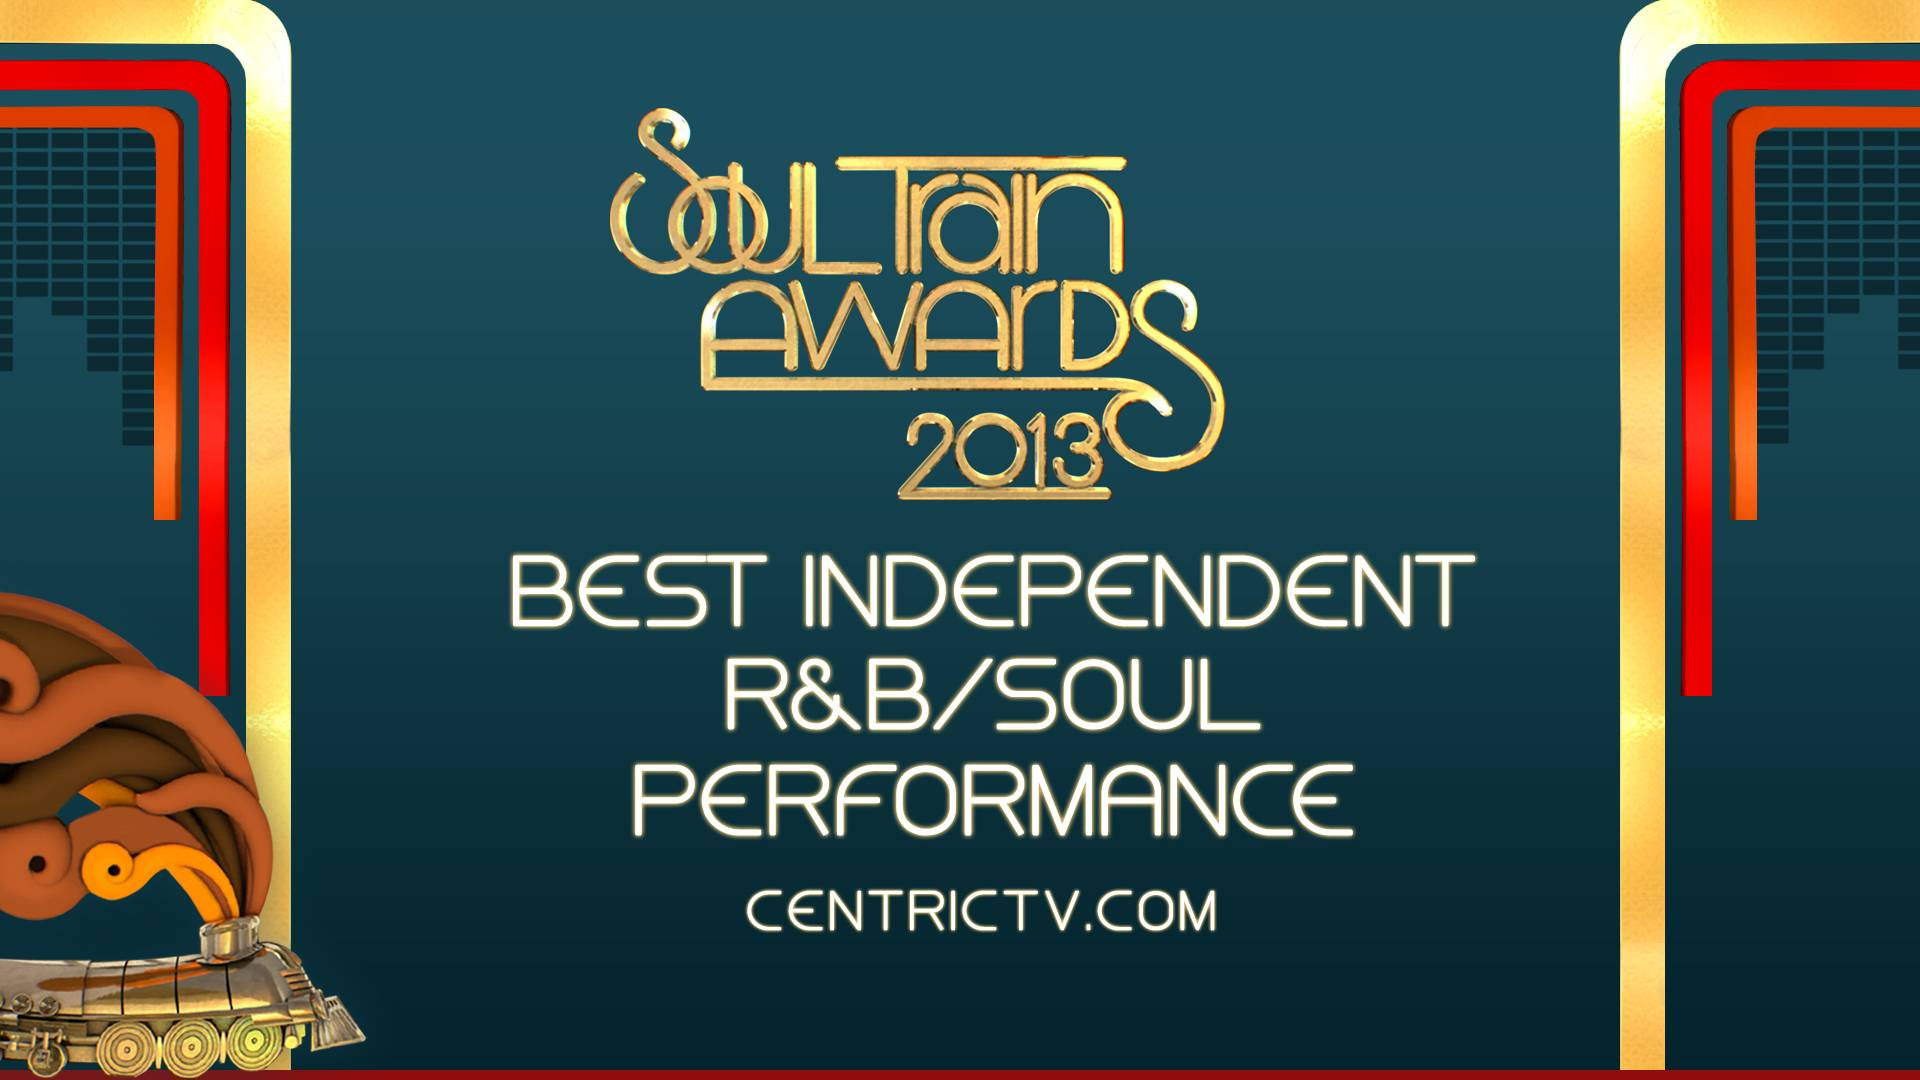 Best Independent R&B/Soul Performance